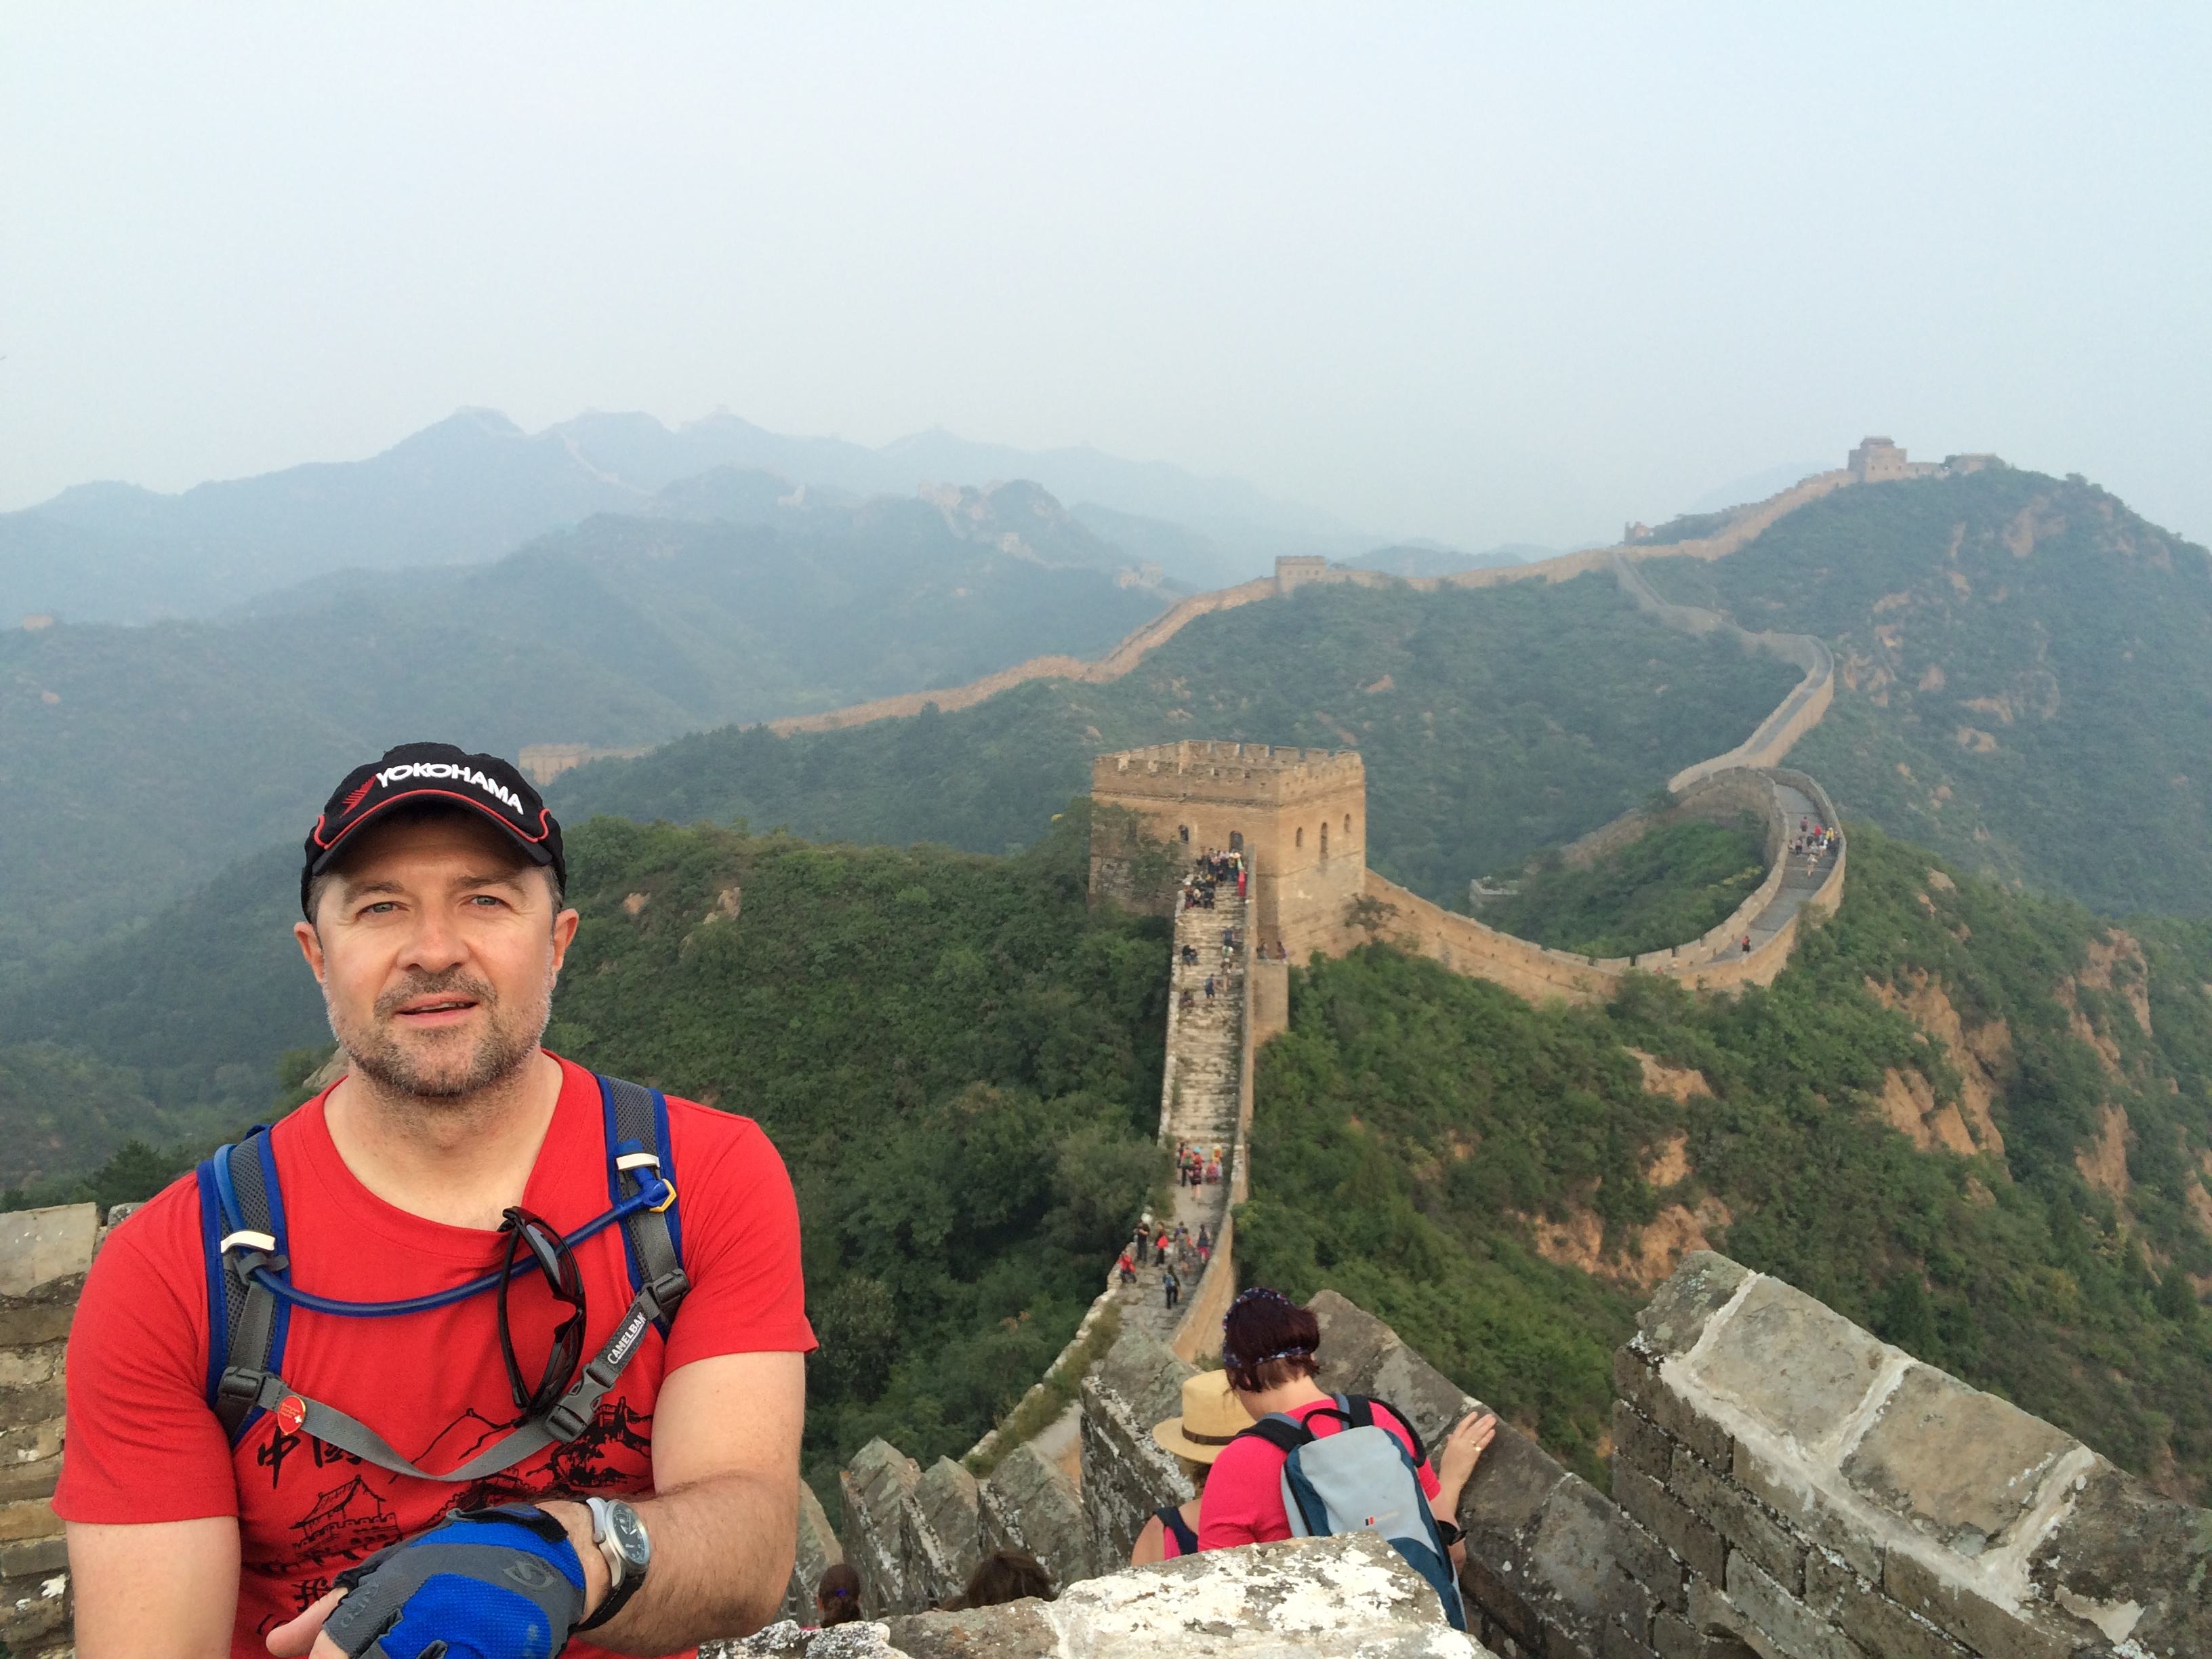 GREAT WALL OF CHINA TREK RAISED £225,00